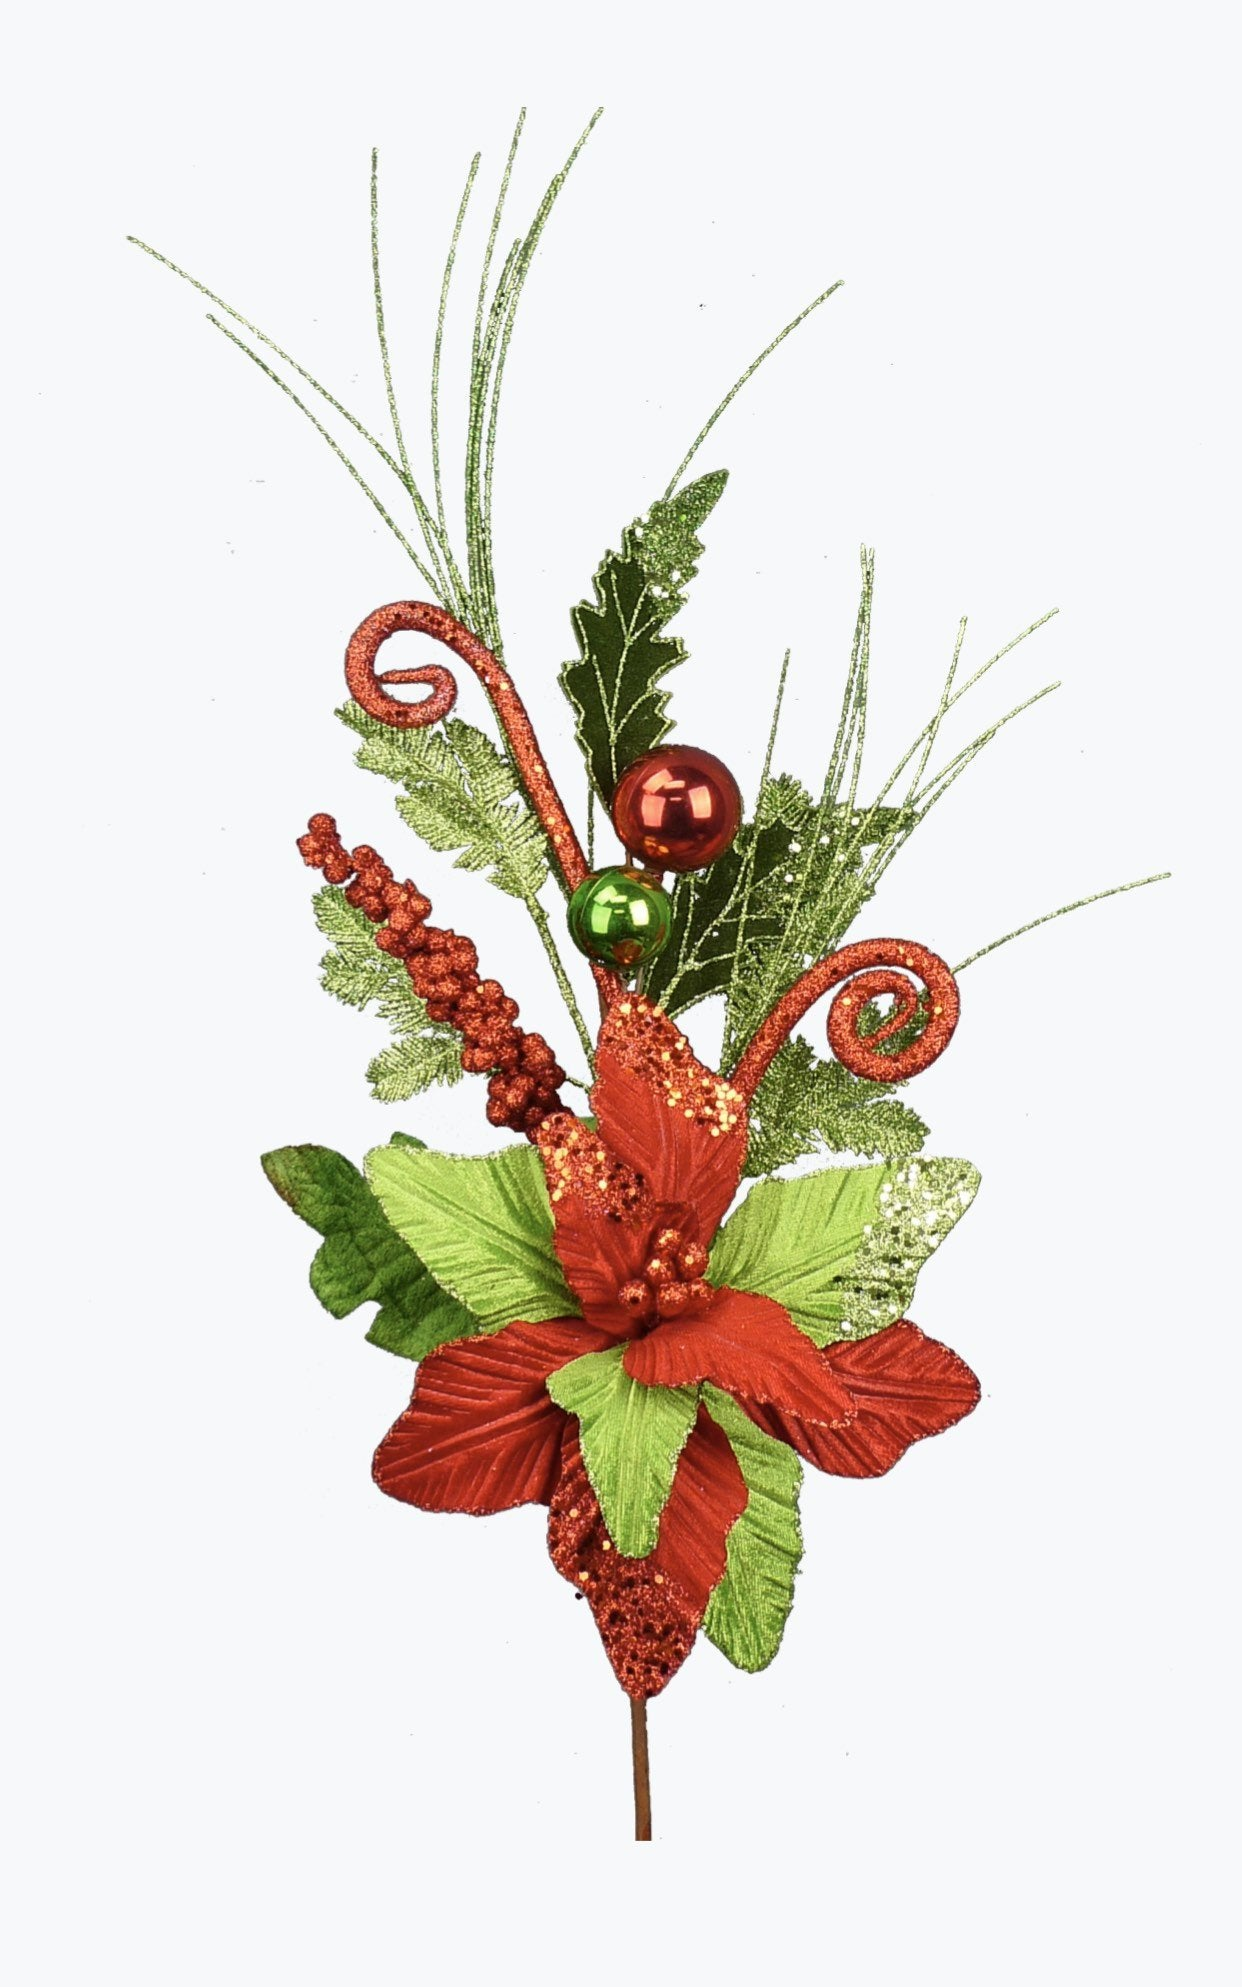 Red and green Christmas poinsettias, fun red glittery poinsettia flowers, artificial flower pics , artificial poinsettias with balls,